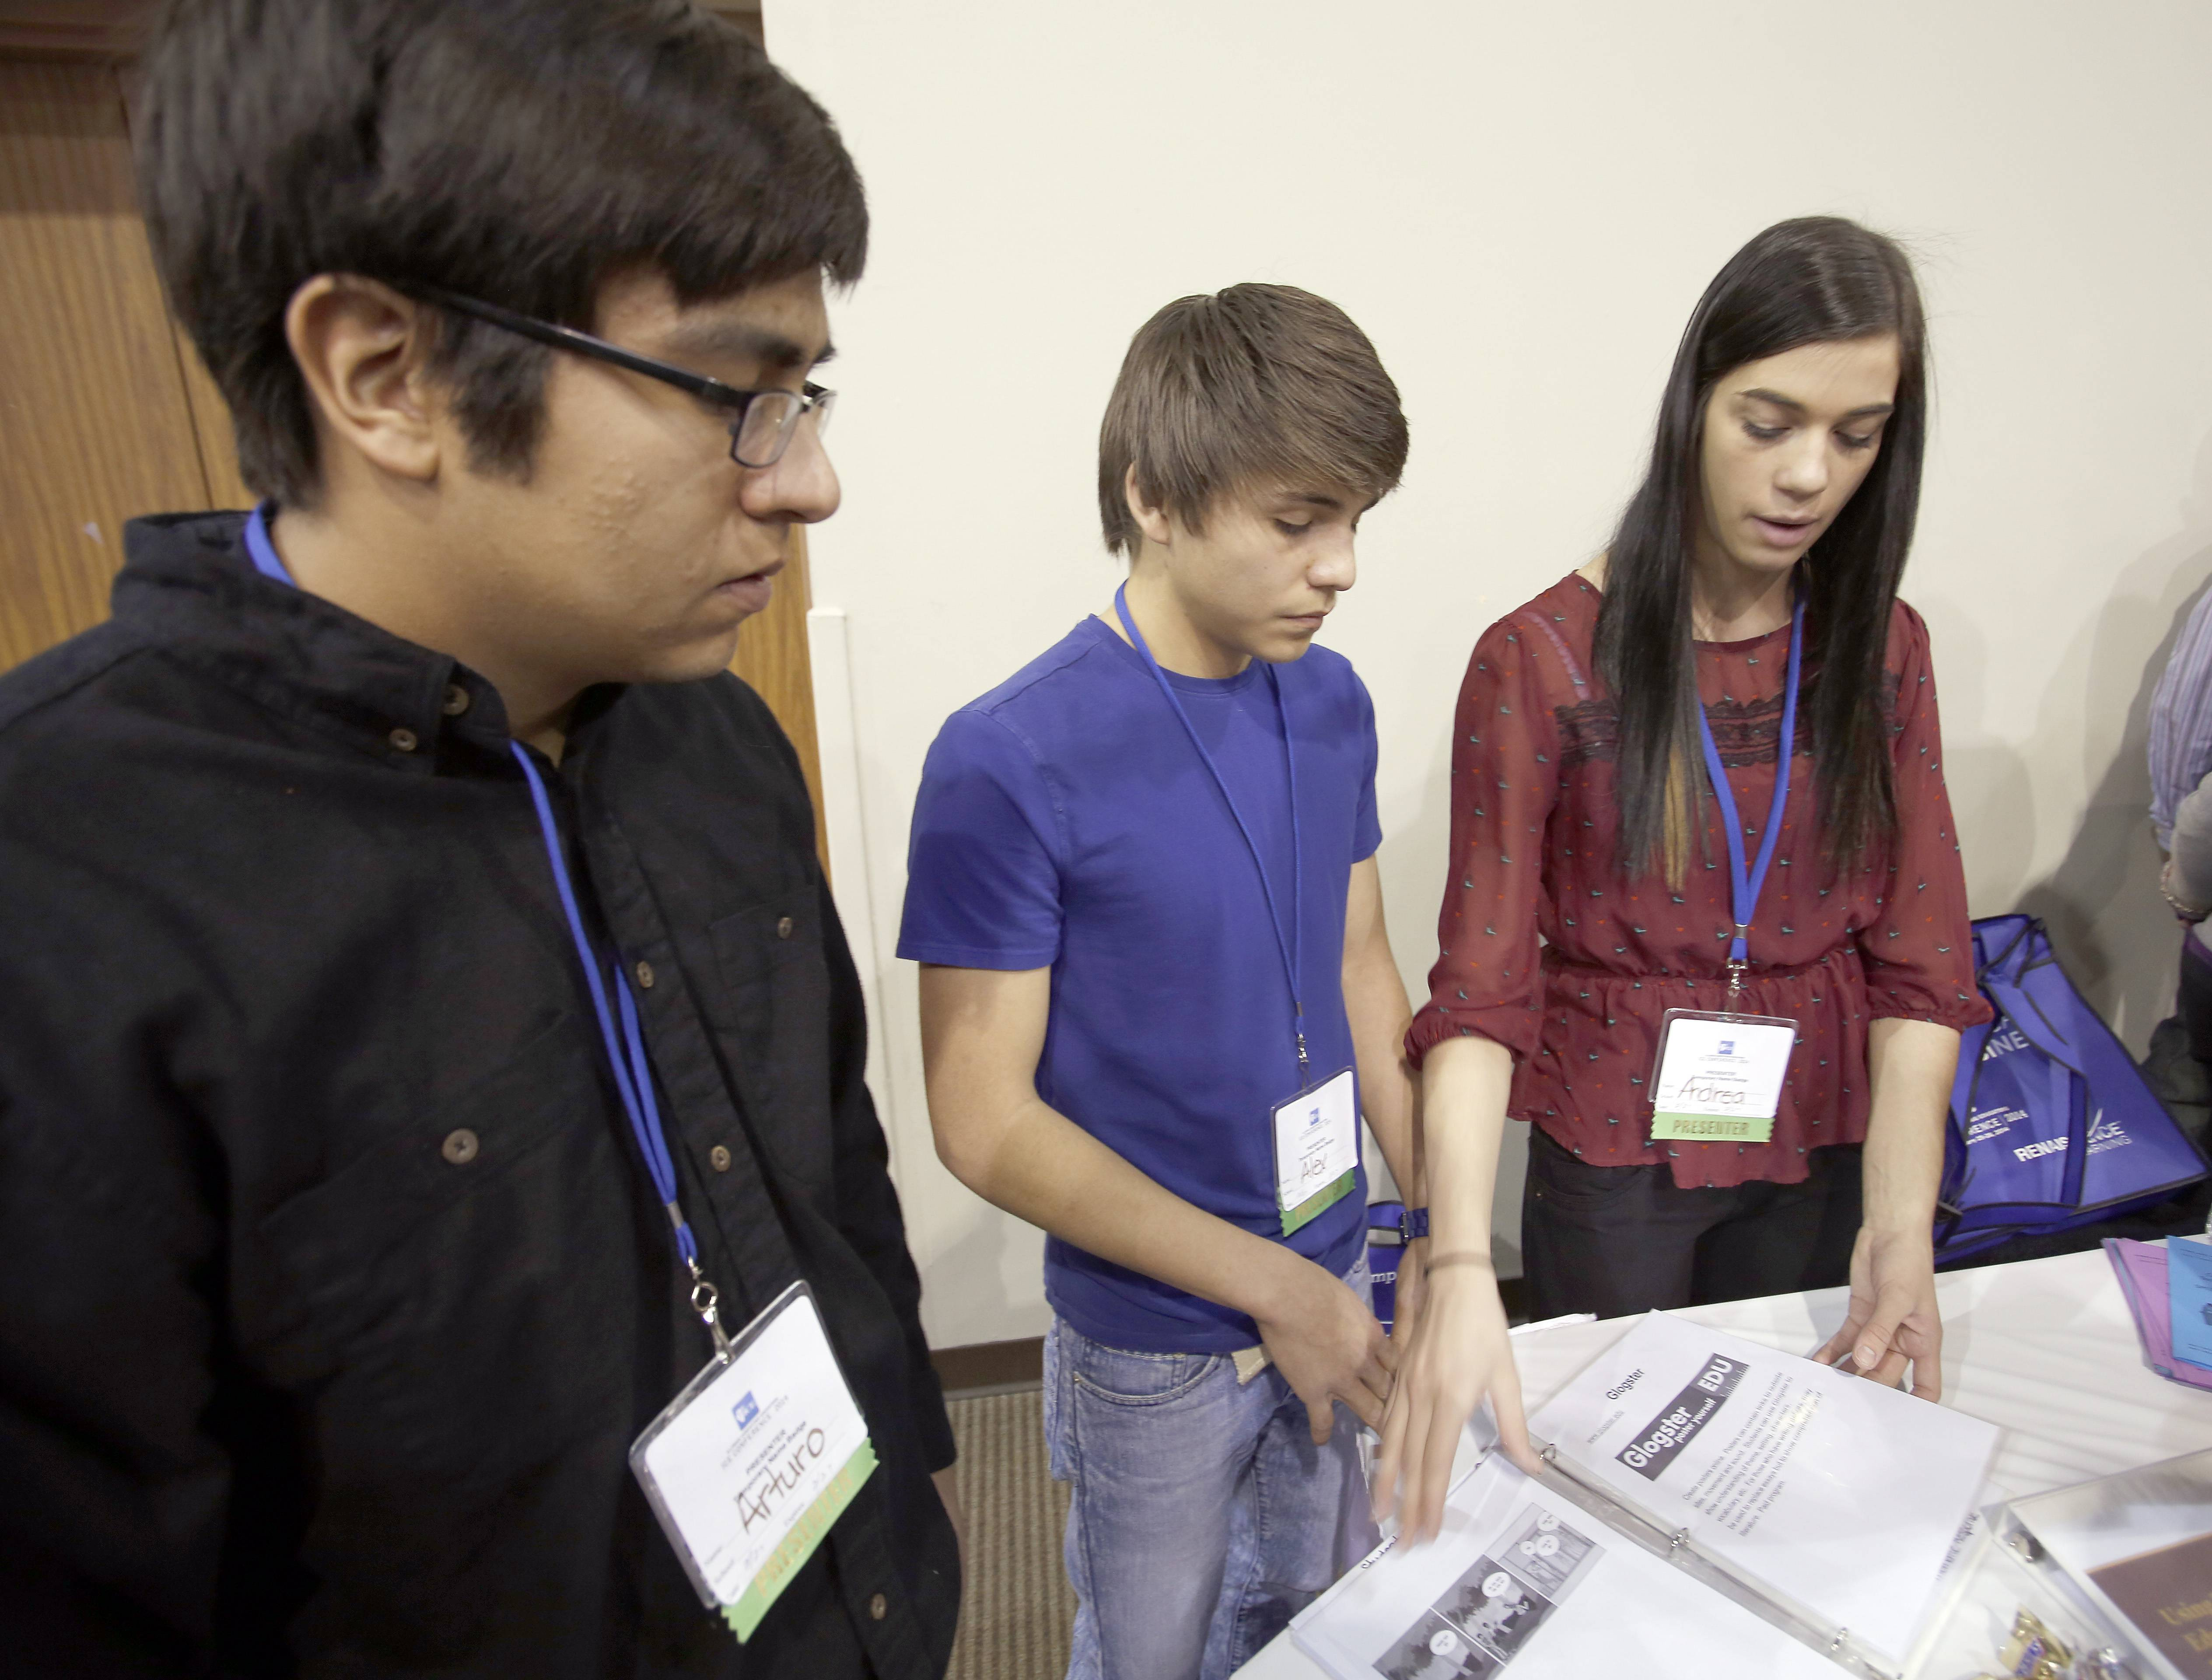 Arturo Silva, 17, from left, Alex Ochoa, 16, and Andrea Petrarca, 18, explain how special education students are using technology at Kaneland High School during the Illinois Computing Educators State Conference Thursday at Pheasant Run in St. Charles.